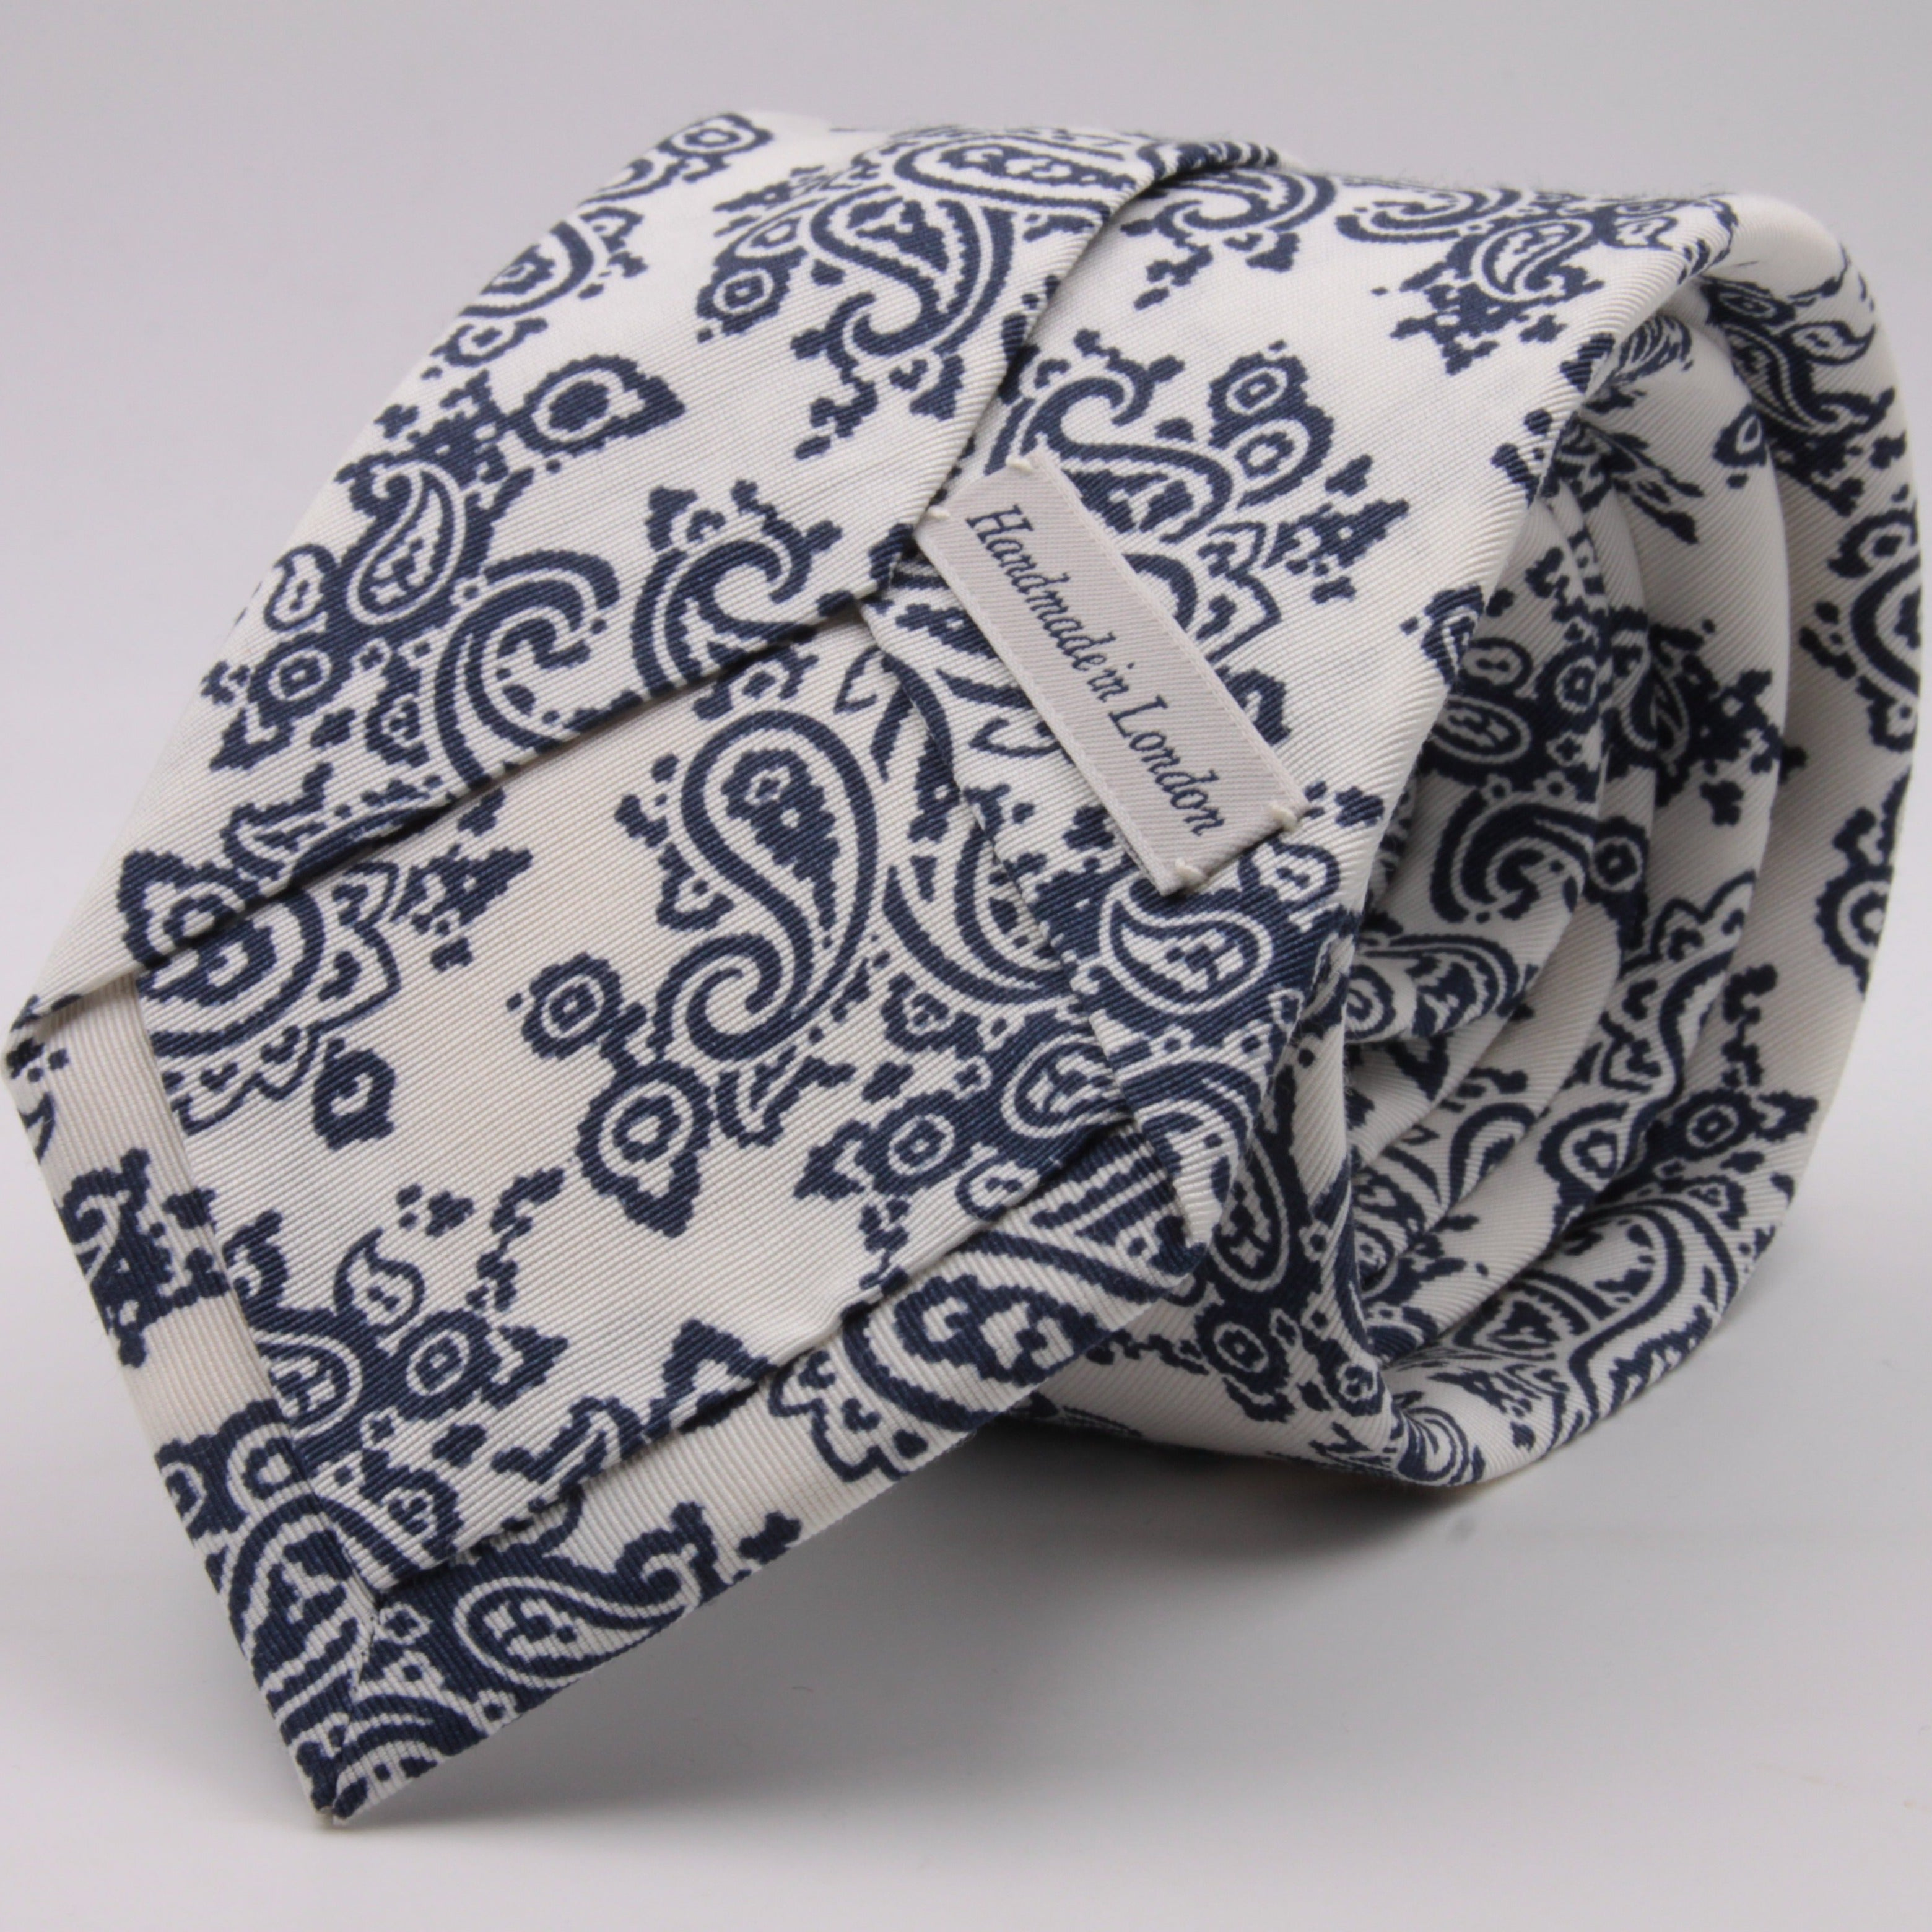 Drake's for Cruciani e Bella Printed 60% Silk 40% Cotton Self-Tipped Blue and White Paysley Motif Tie Handmade in London, England 8 cm x 149 cm #5412